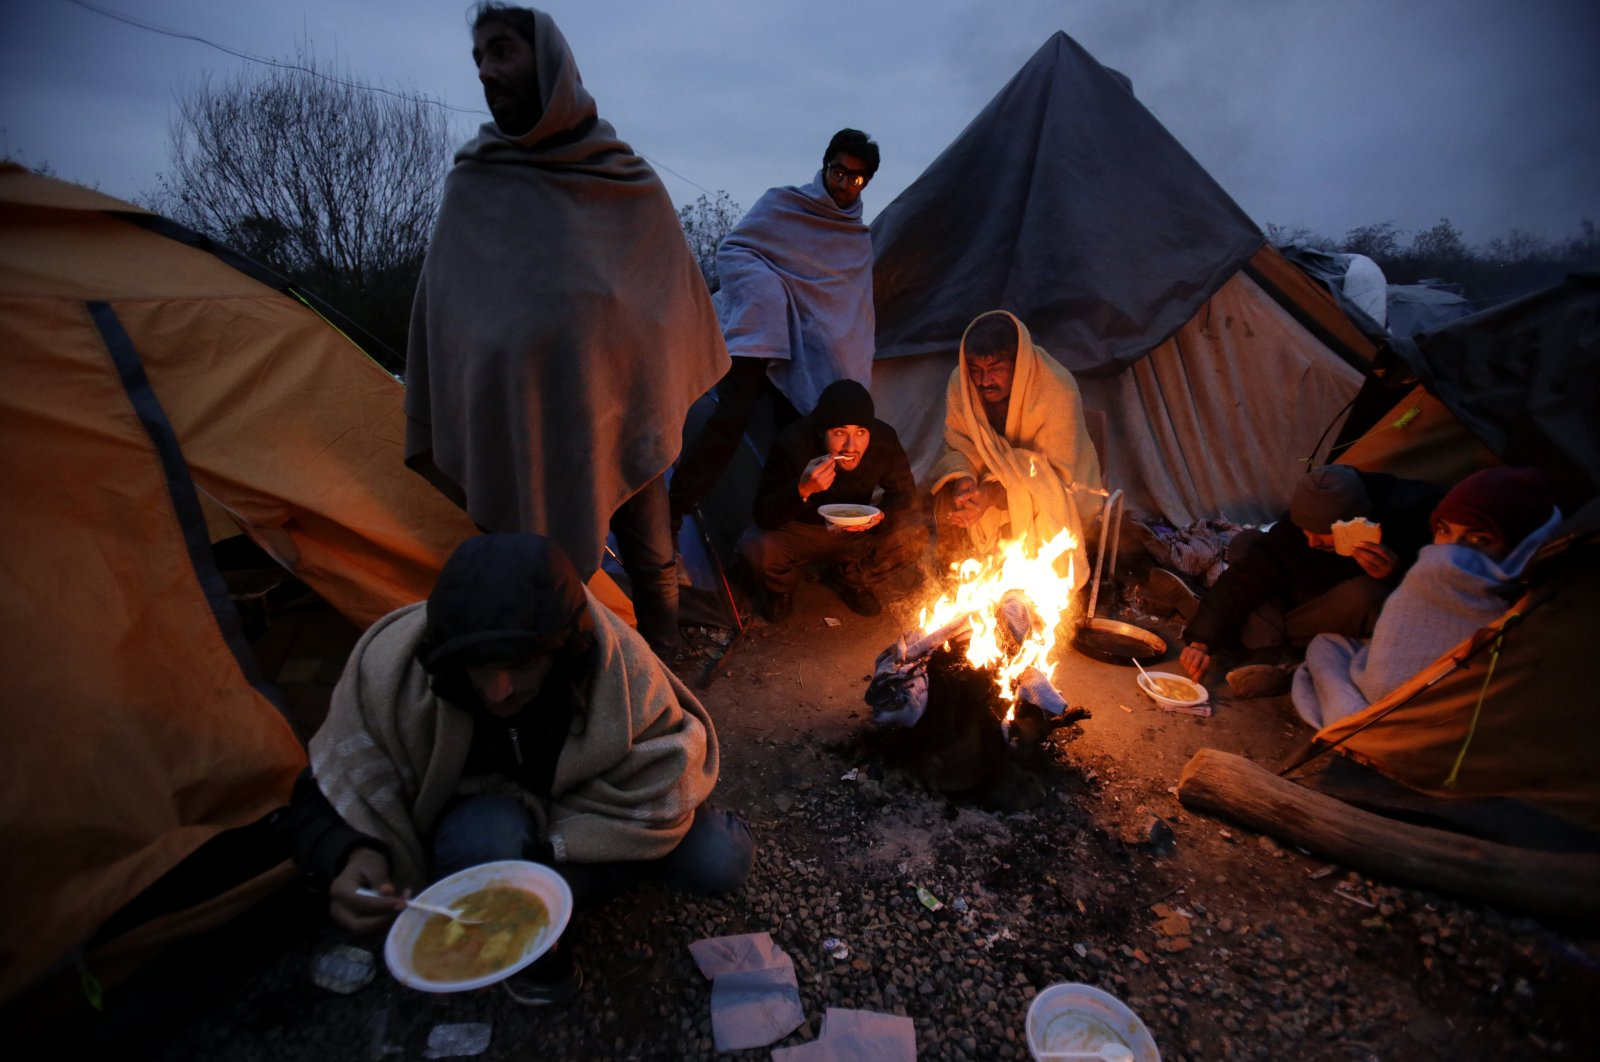 Migrants eat around a fire at a camp in Velika Kadusa, Bosnia-Herzegovina, close to the border with Croatia, Nov. 18, 2019. (AP Photo)